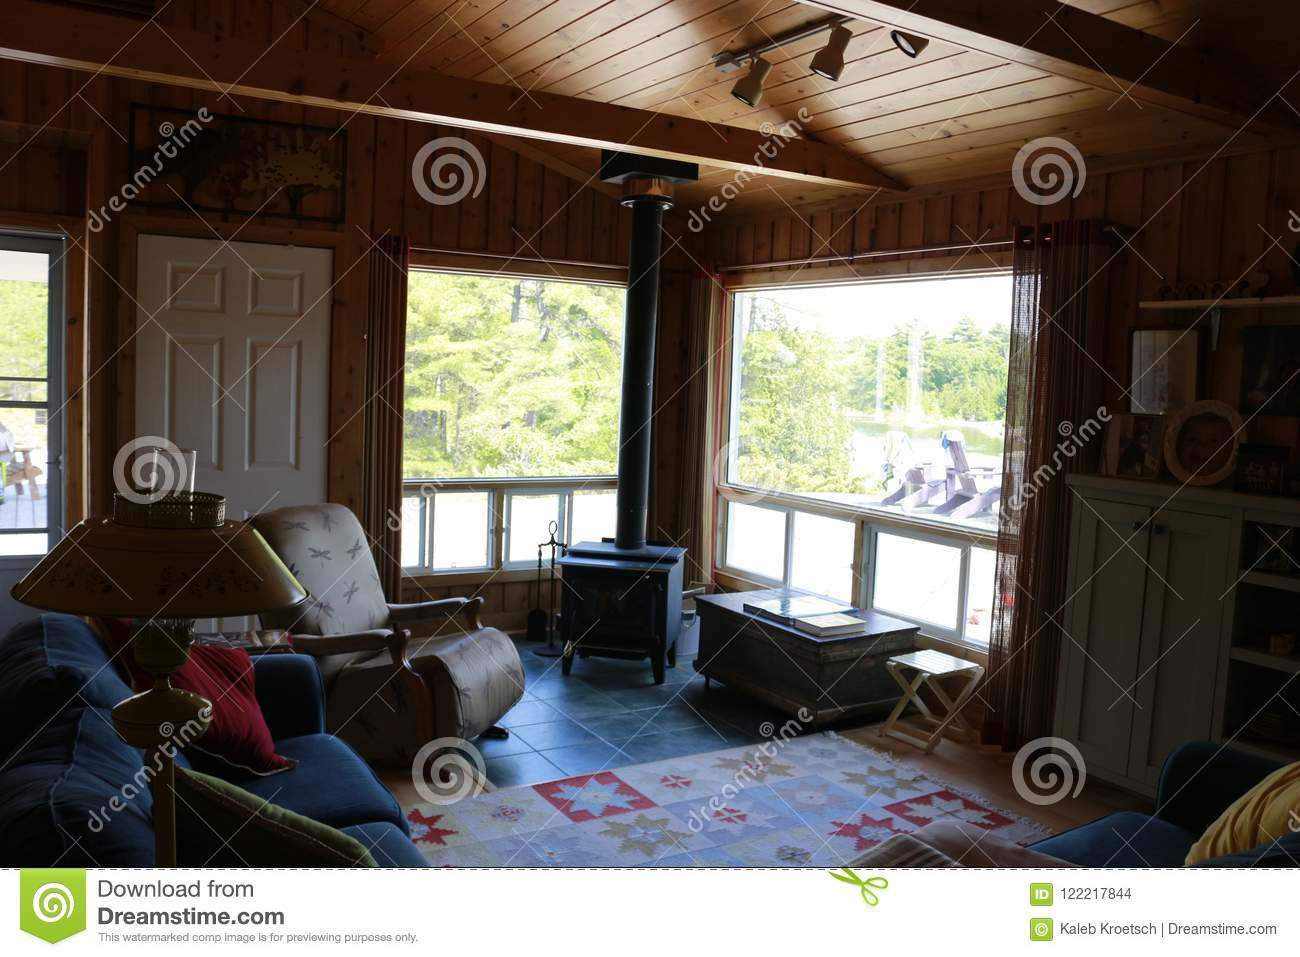 Lights Turn Off And Turn On In Living Room With The Stairs In The Cottage Stock Photo Image Of Design Entrance 122217844